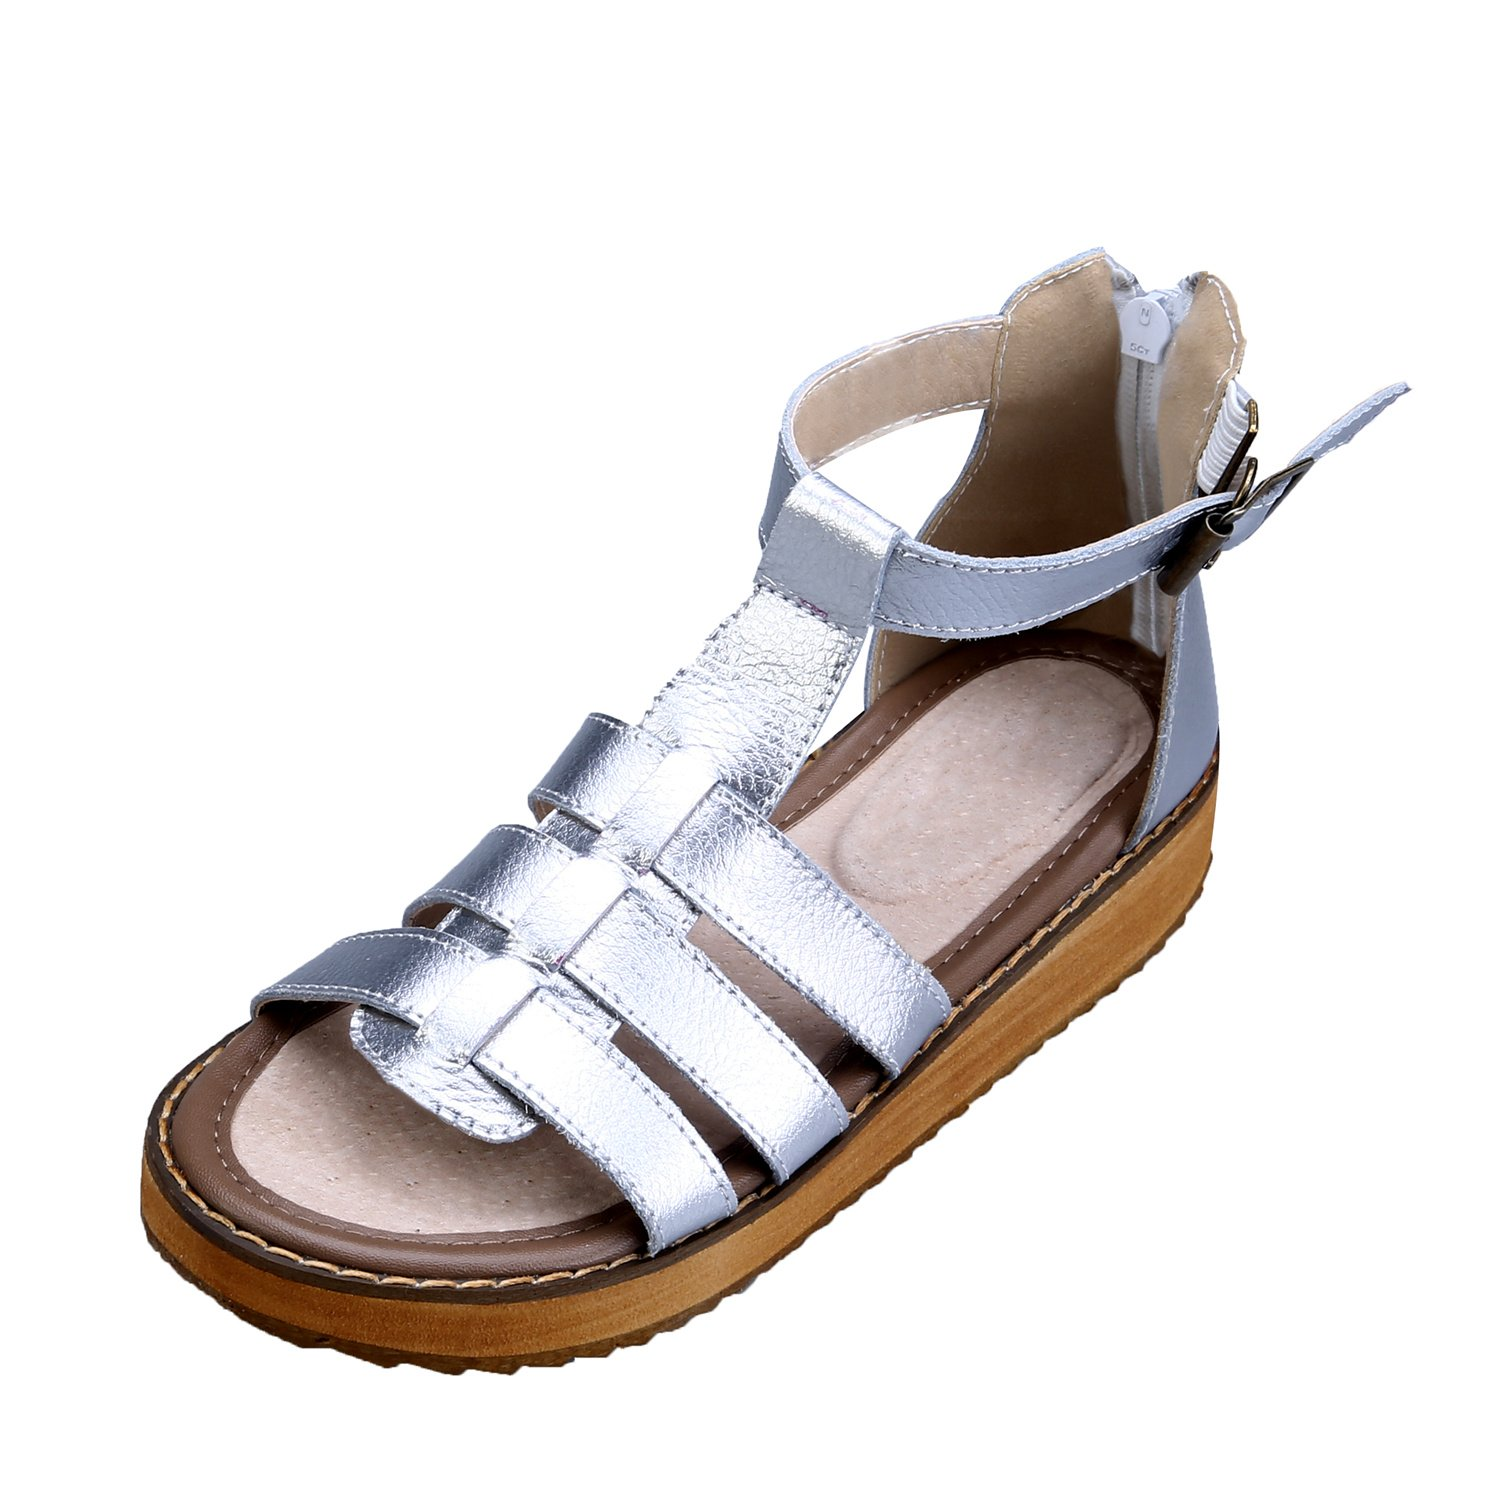 Smilun Girl's Fashion Strappy Roman Sandals Wedge Sandals Flip Flops Thongs Open Toe Sandals Flip Flops Roman Sandal Summer Sandals Silver US6